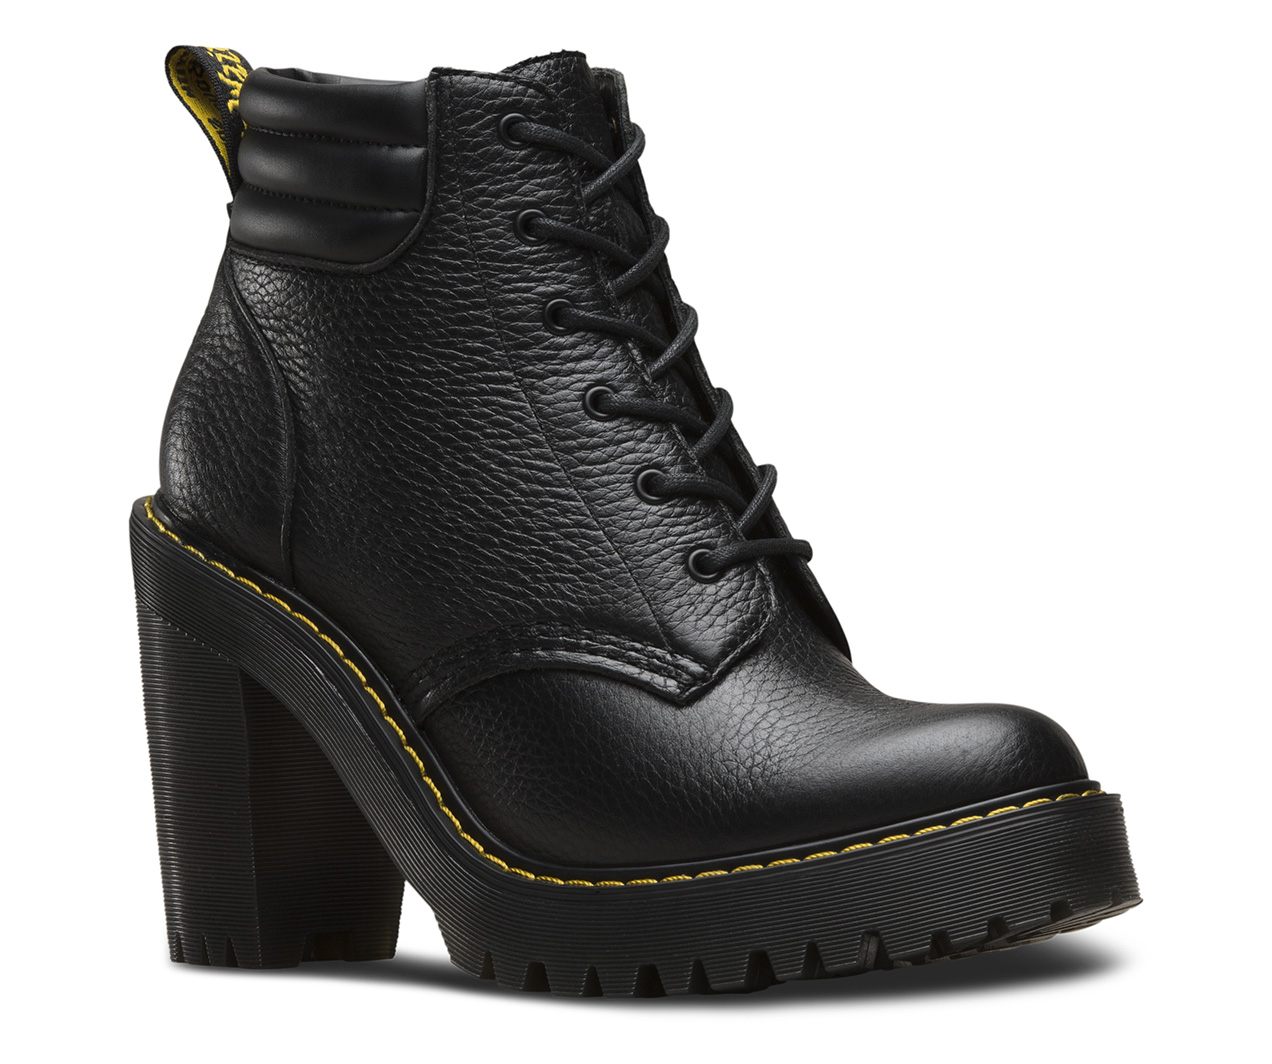 PERSEPHONE AUNT SALLY | Womens Boots | Dr. Martens ...